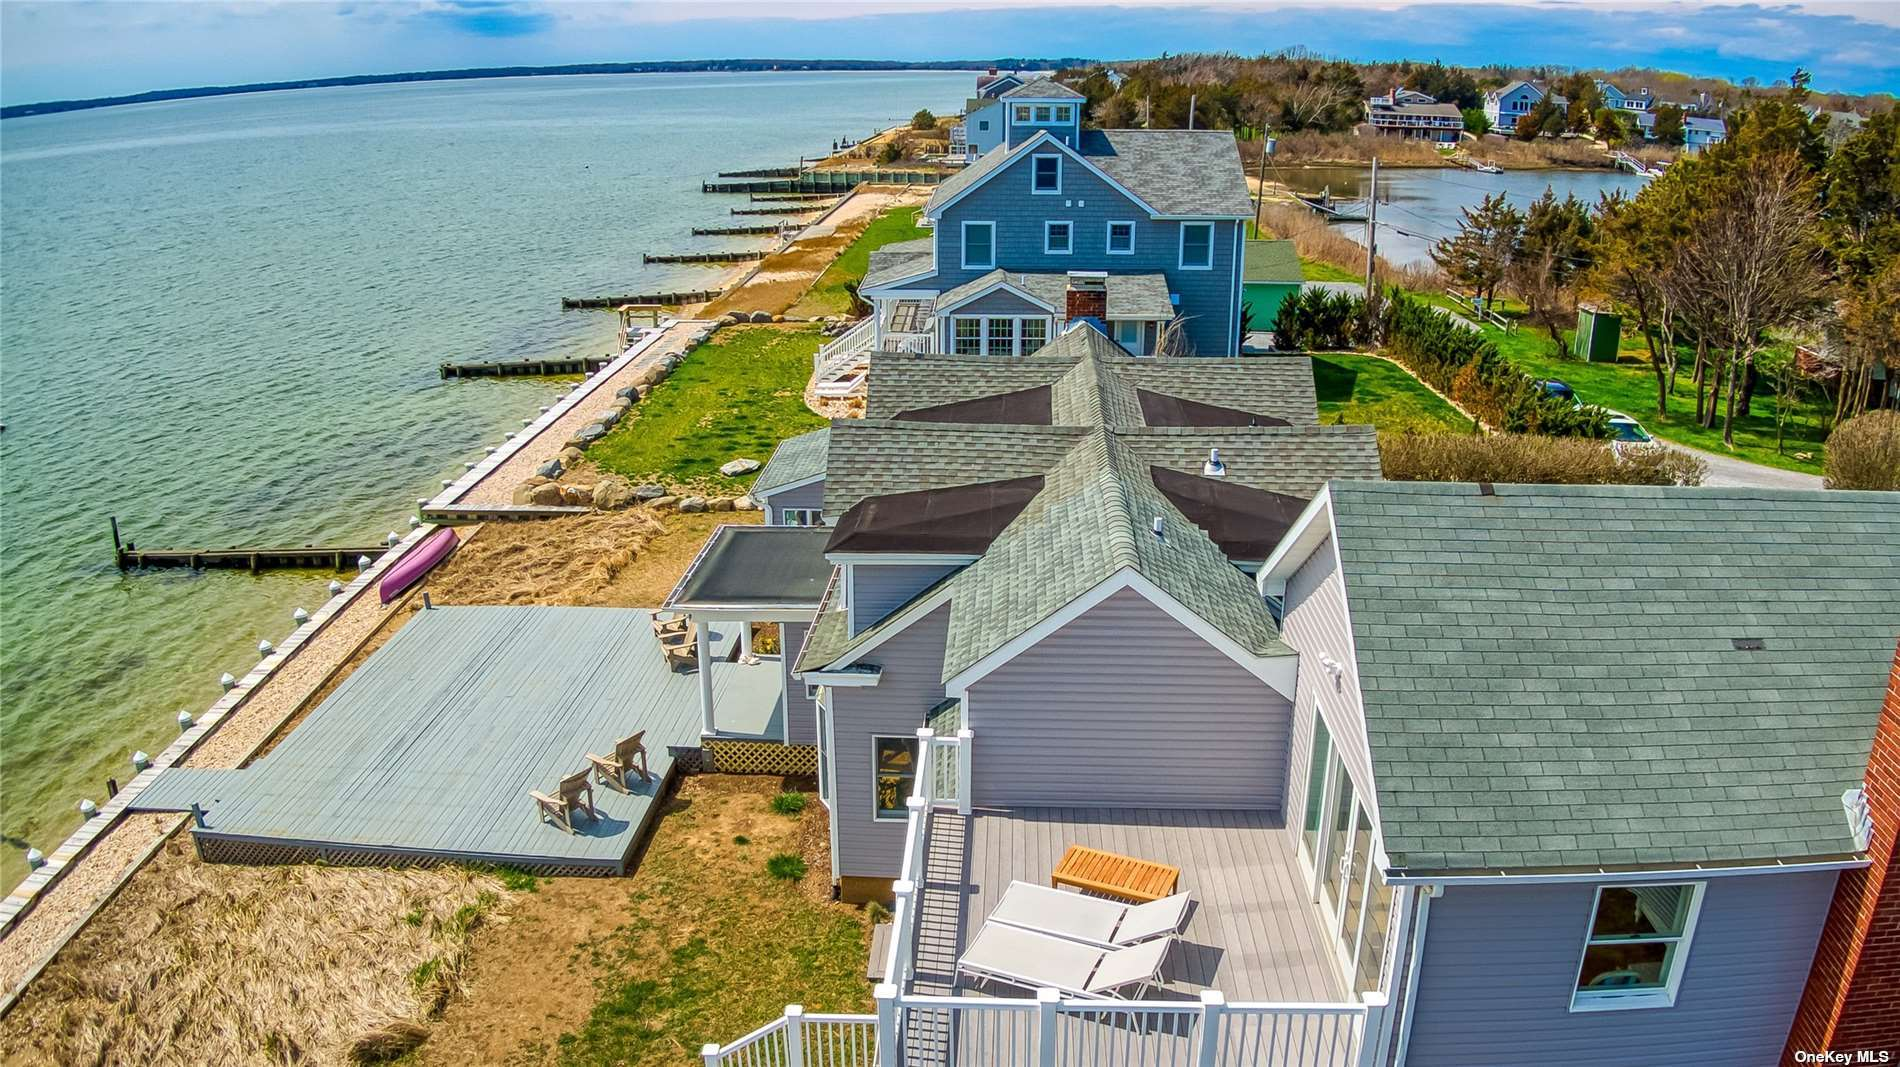 Spectacular Renovated Bayfront, embracing the prevailing southwesterly breezes & sweeping views over the Peconic Bay to the South Fork. Expansive waterside deck destined for entertaining & cocktails at sunset. Updated kitchen, formal DR, LR w/flp, sunroom, all with waterview's.  2nd flr  guest wing includes a guest ensuite with updated bath, 2 additional BRs w/ full updated bth.  On the East side of the house is a private master wing, LR w/flp , 2nd flr  master suite w/ waterview terrace & full bath. Great natural light throughout. North Fork living at its best.